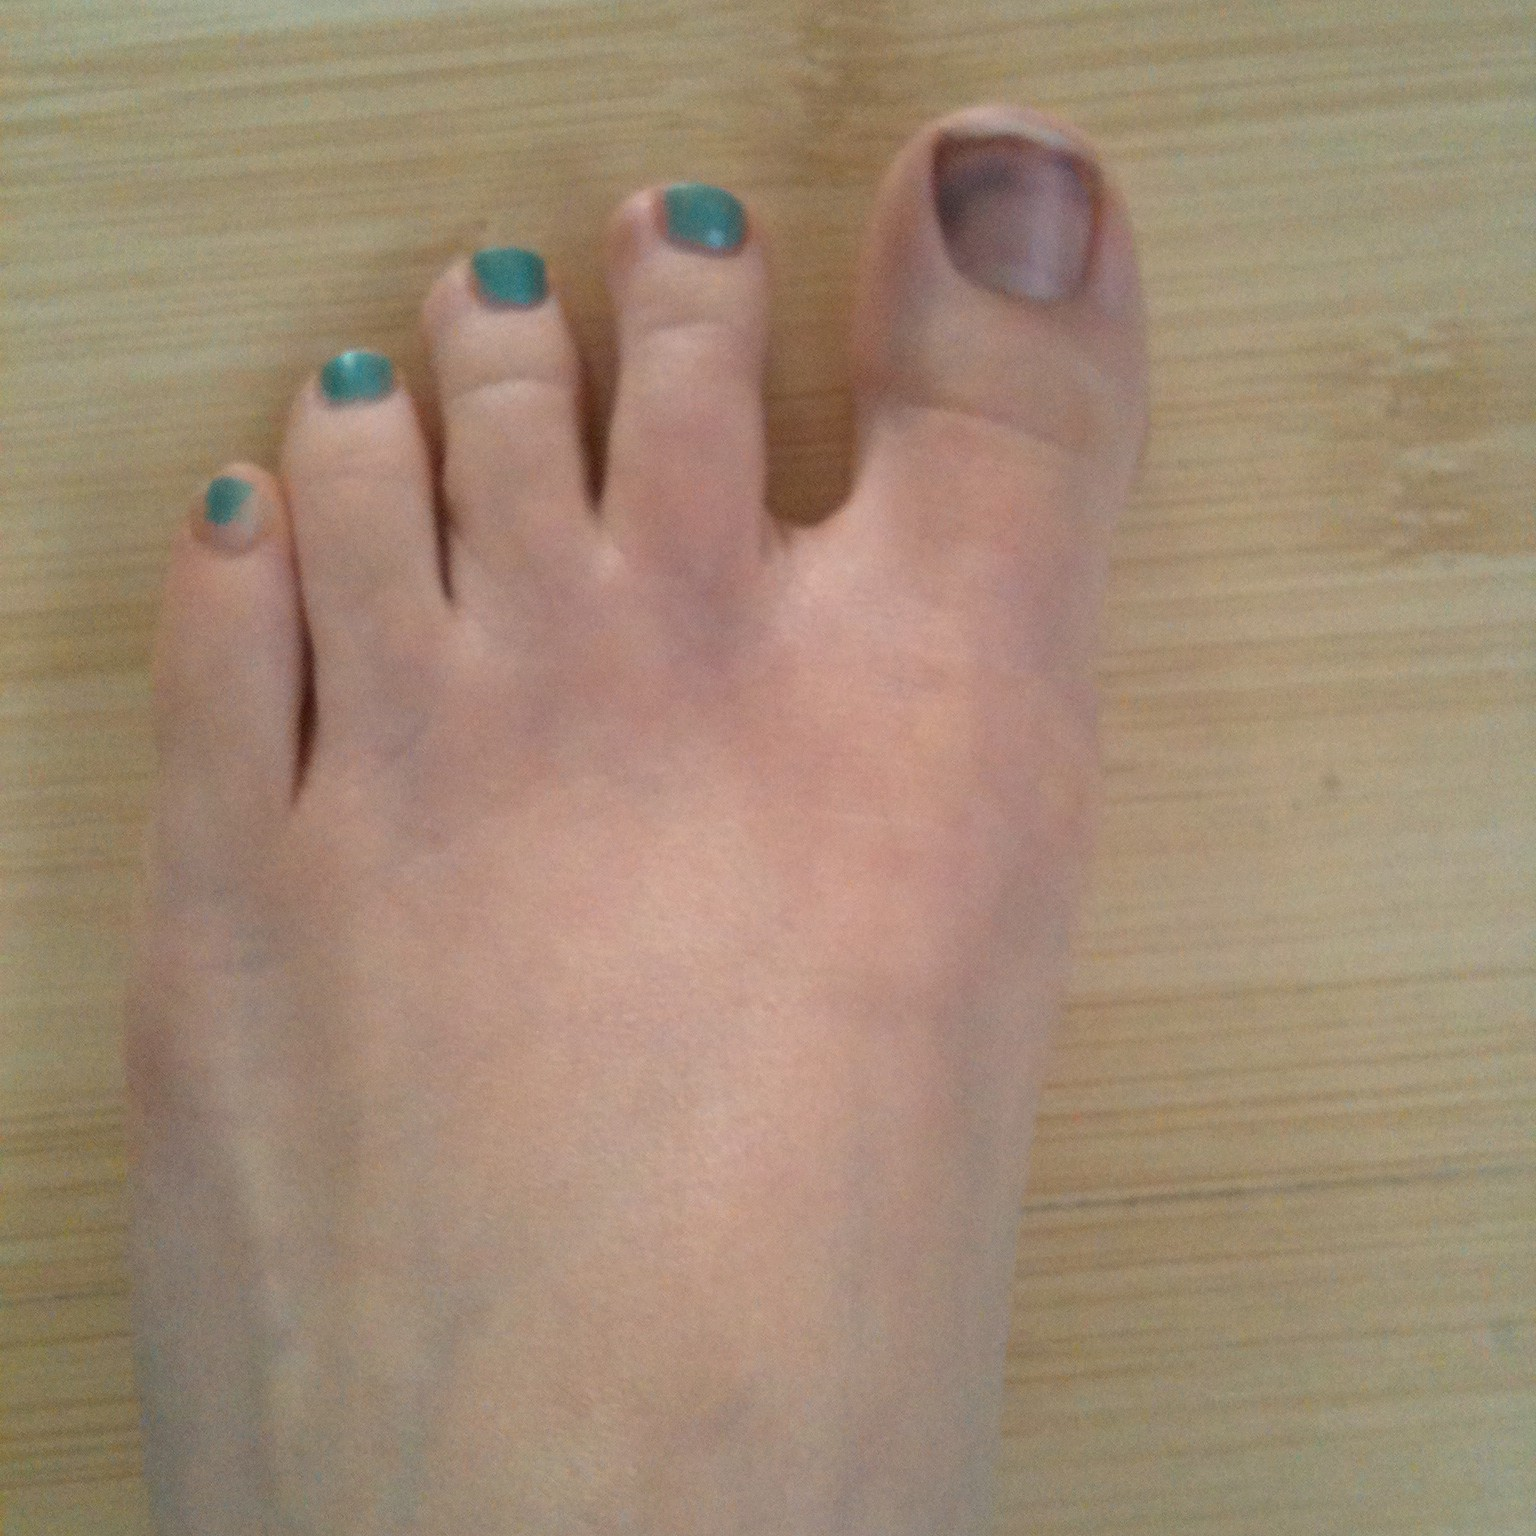 Bruise Under The Big Toenail Treatment Secrets Shared By